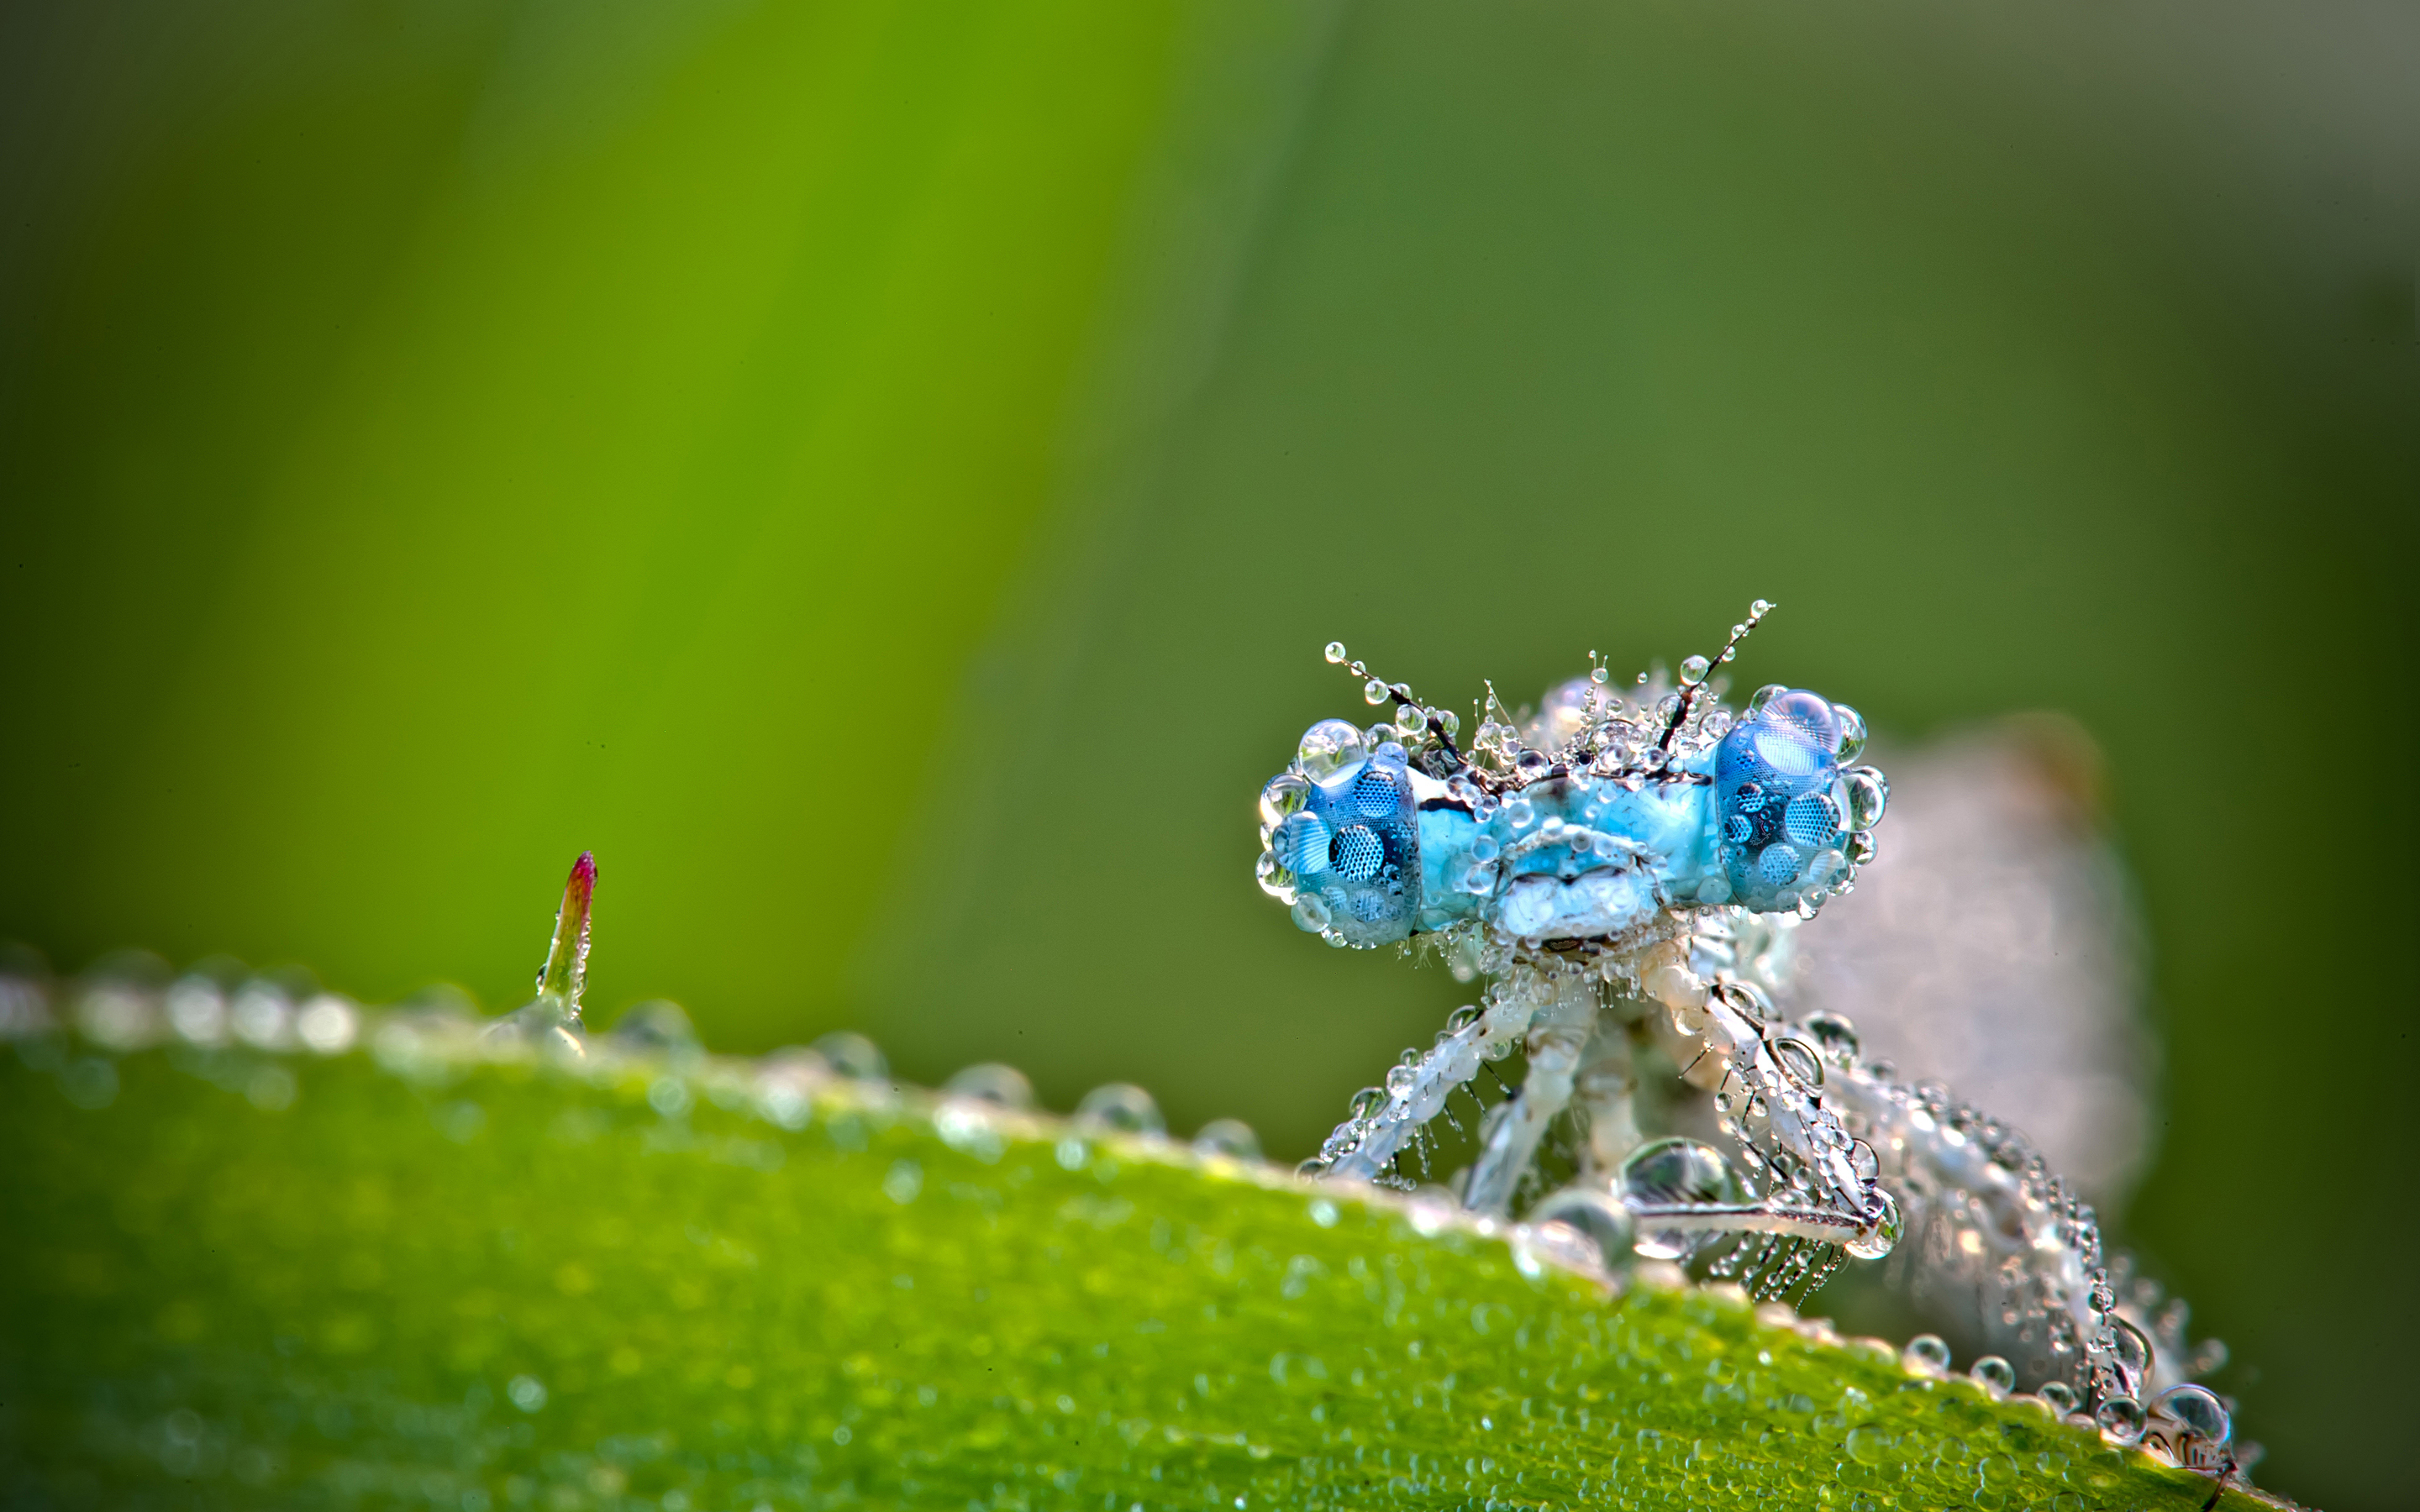 copain lagrion Insect Macro Photography Wallpaper by David Chambon 2880x1800